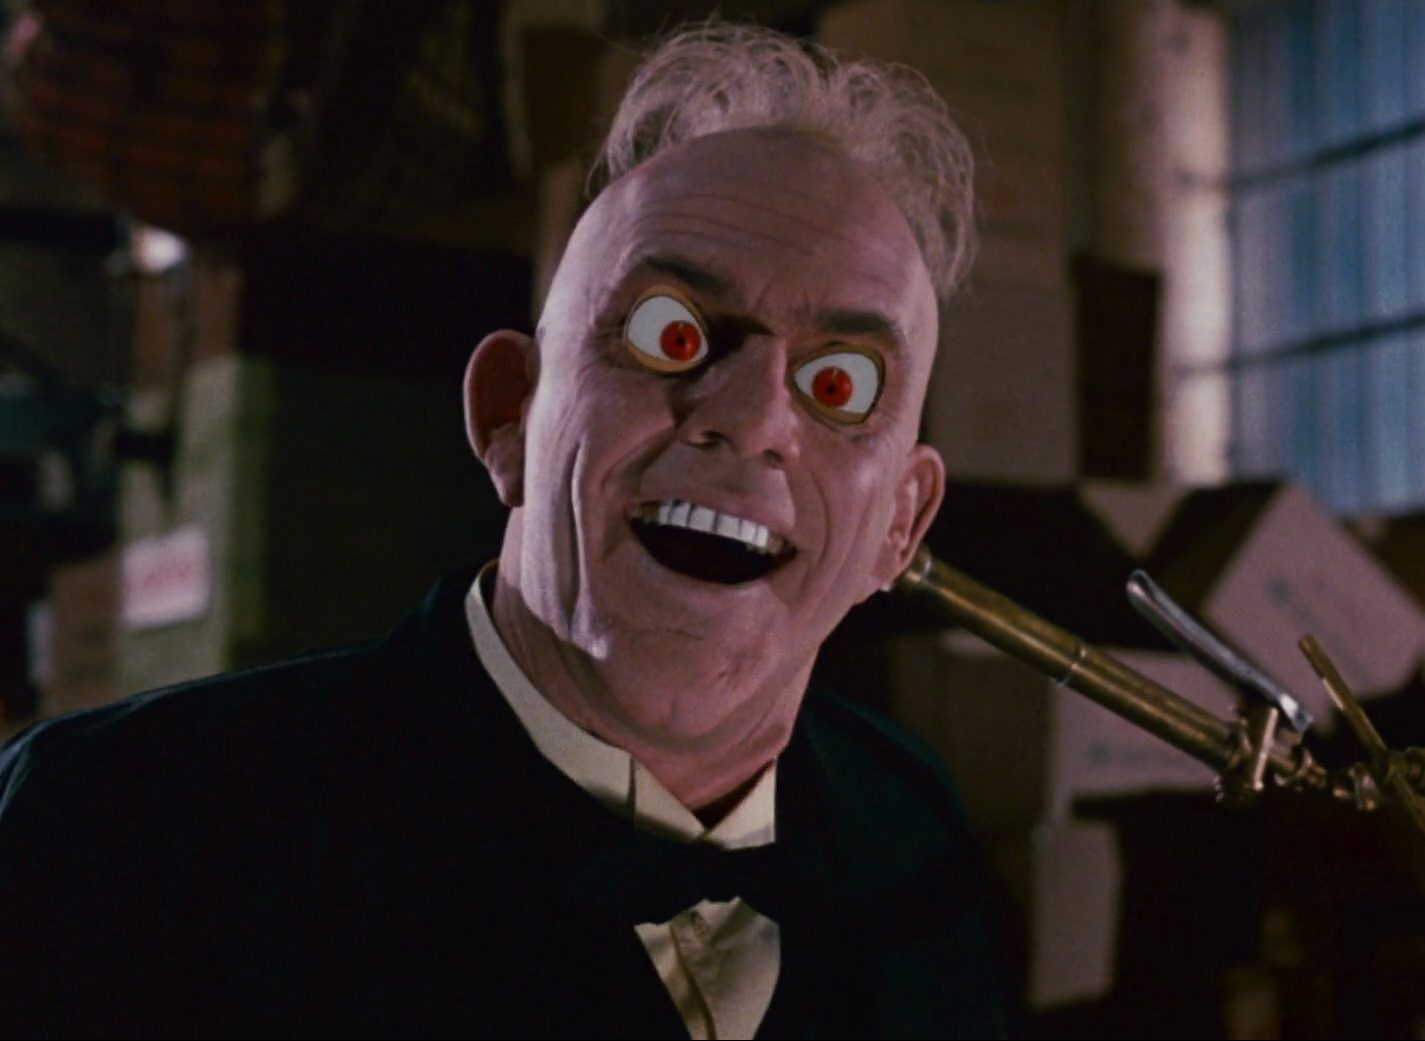 Who framed roger rabbit disneyscreencaps com 10706 e1604075343341 20 Things You Never Knew About Christopher Lloyd